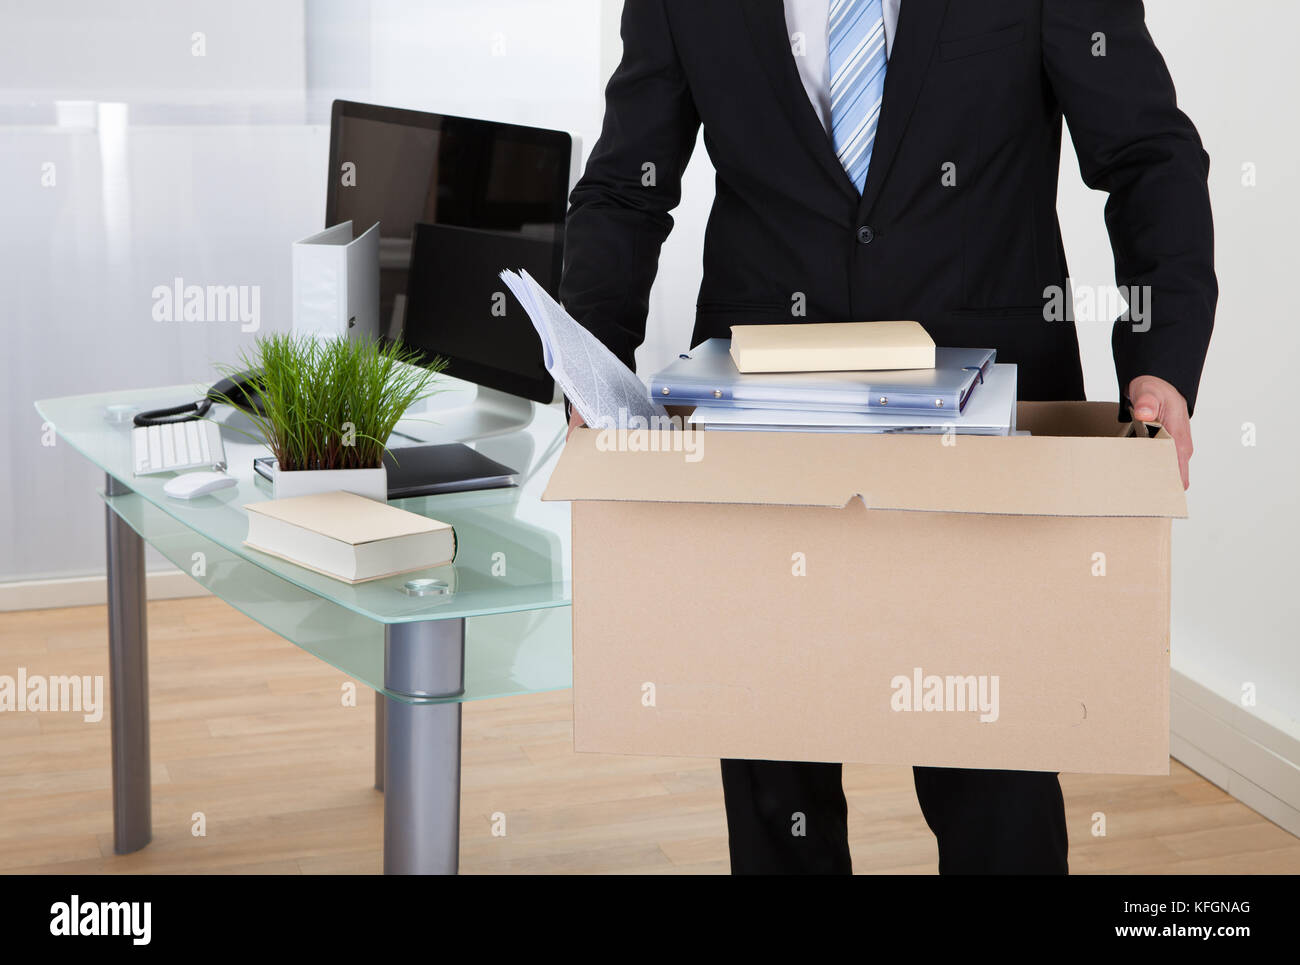 Businessman moving offices packing up all his personal belongings and files into a brown cardboard box - Stock Image